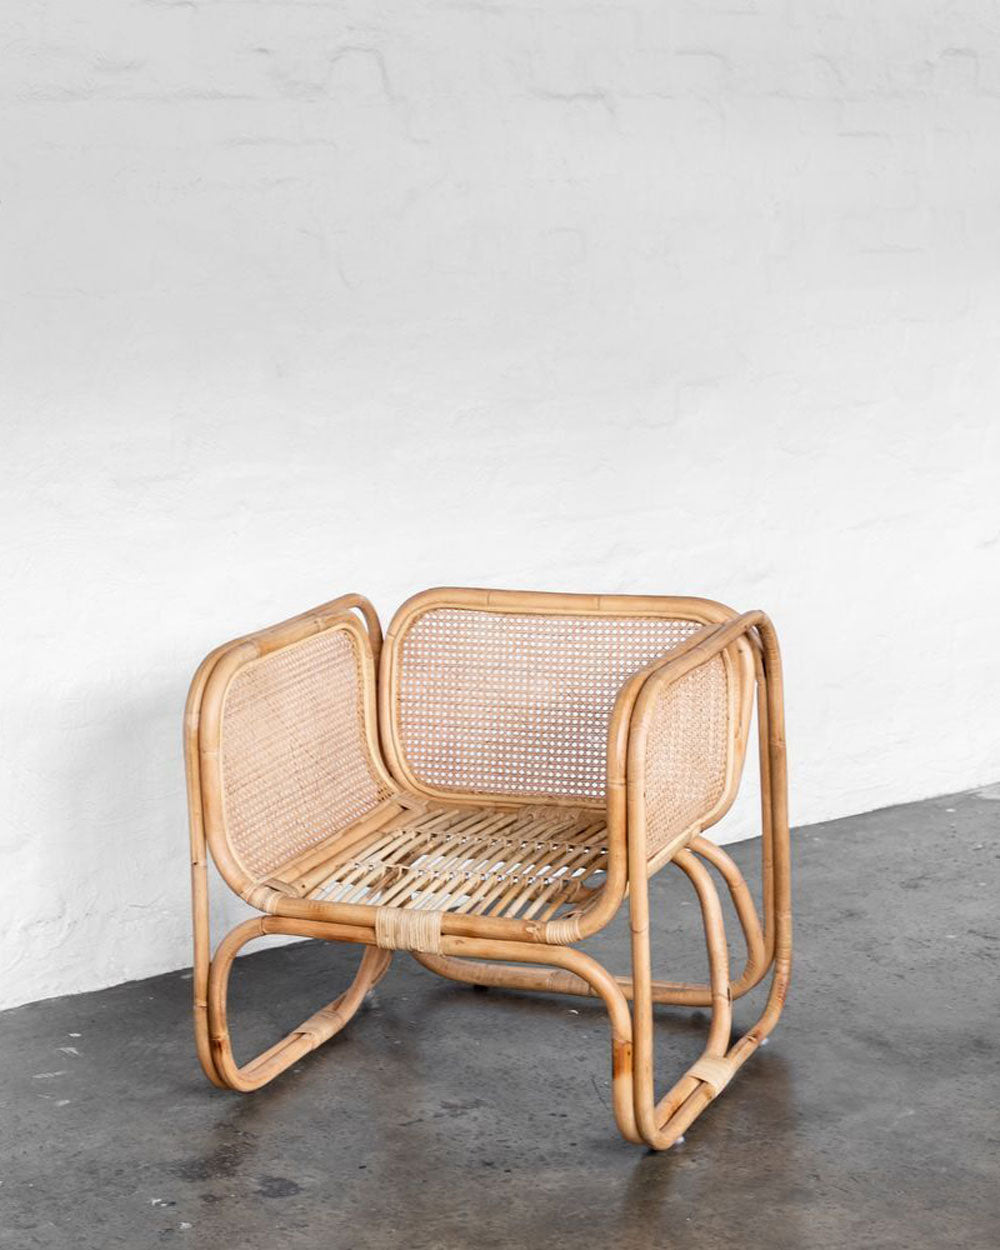 Wilbur Cane Chair / McMullin & Co